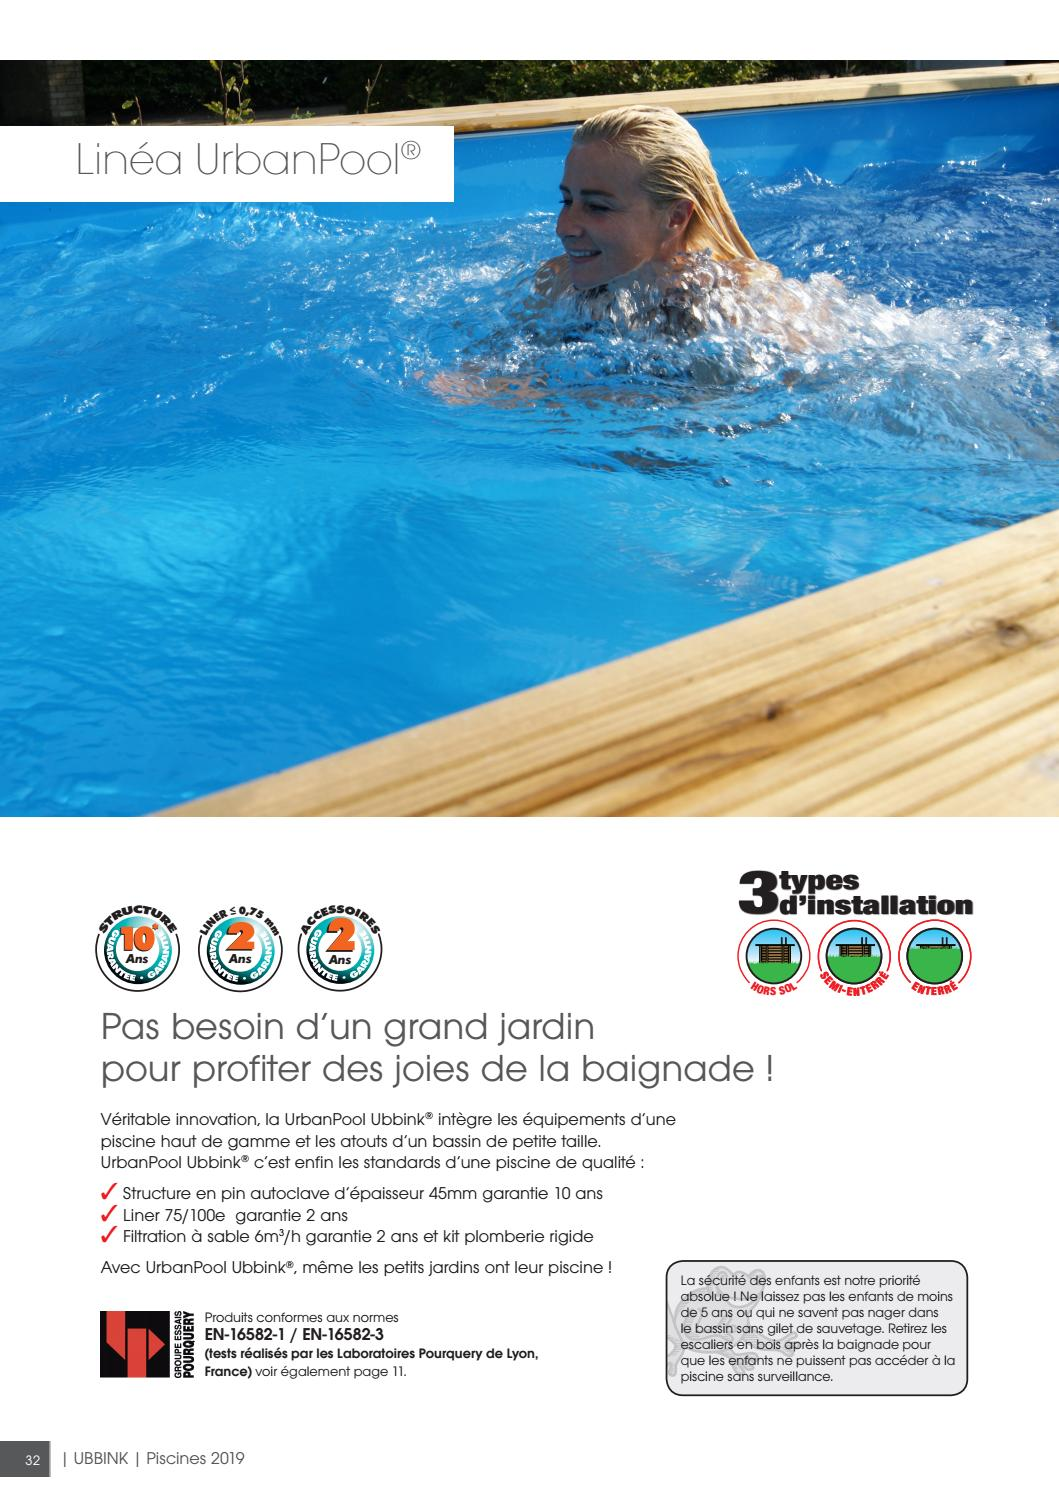 Securite Enfant Piscine Ubbink Piscine By Issuu